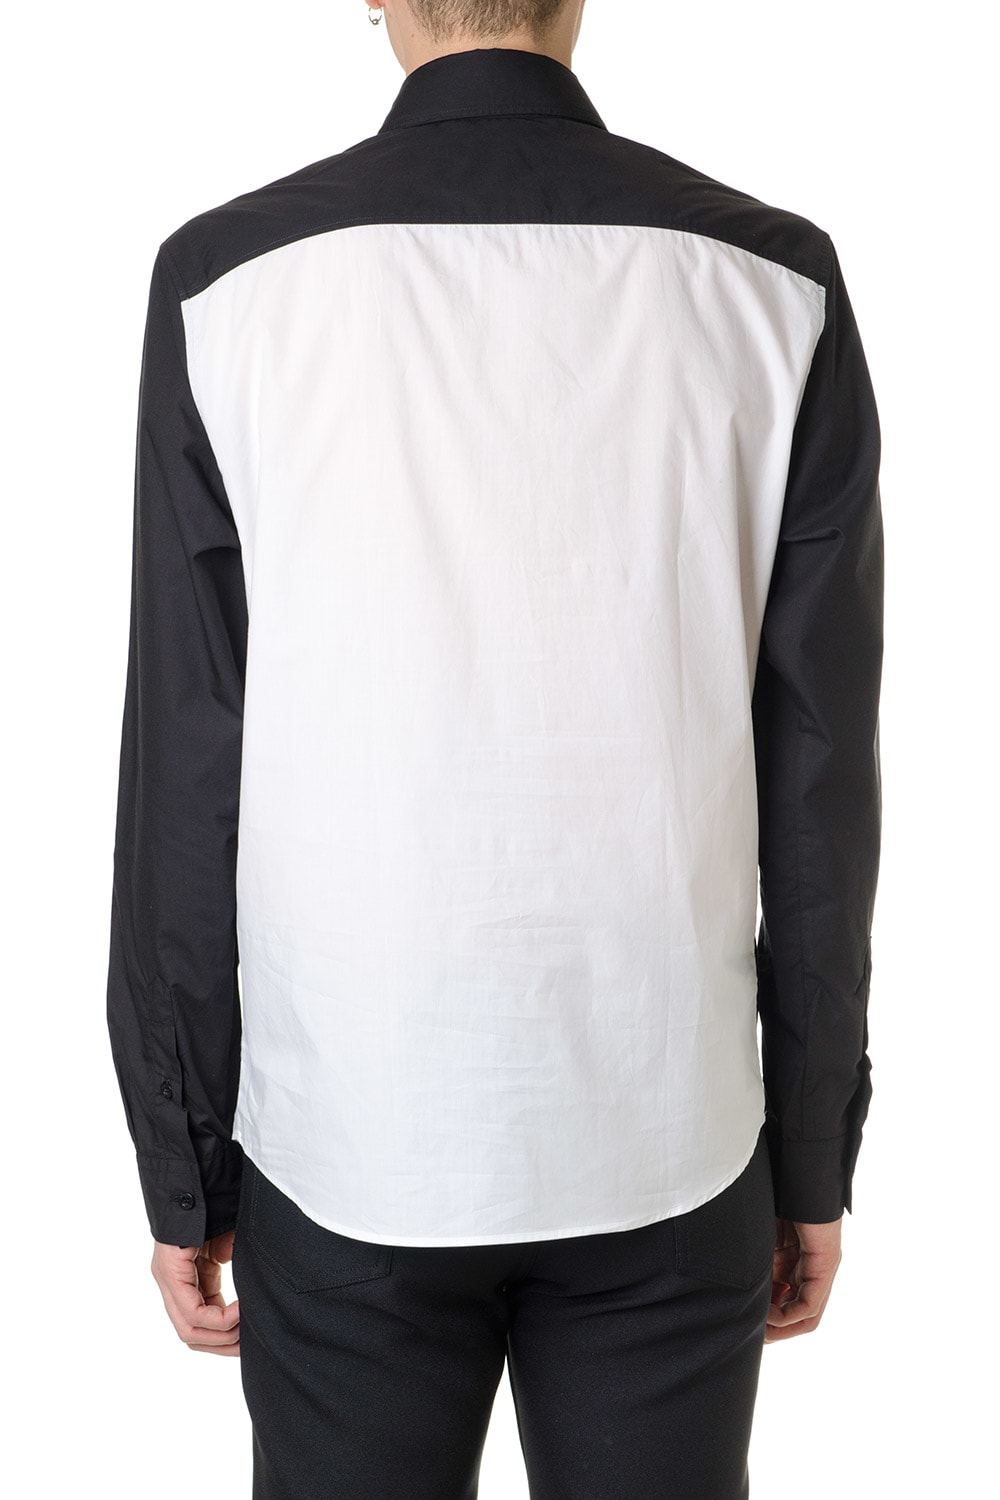 e7c033a909 Versus Versace Bicolor Shirt Black & White With Embroidered 90s Logo